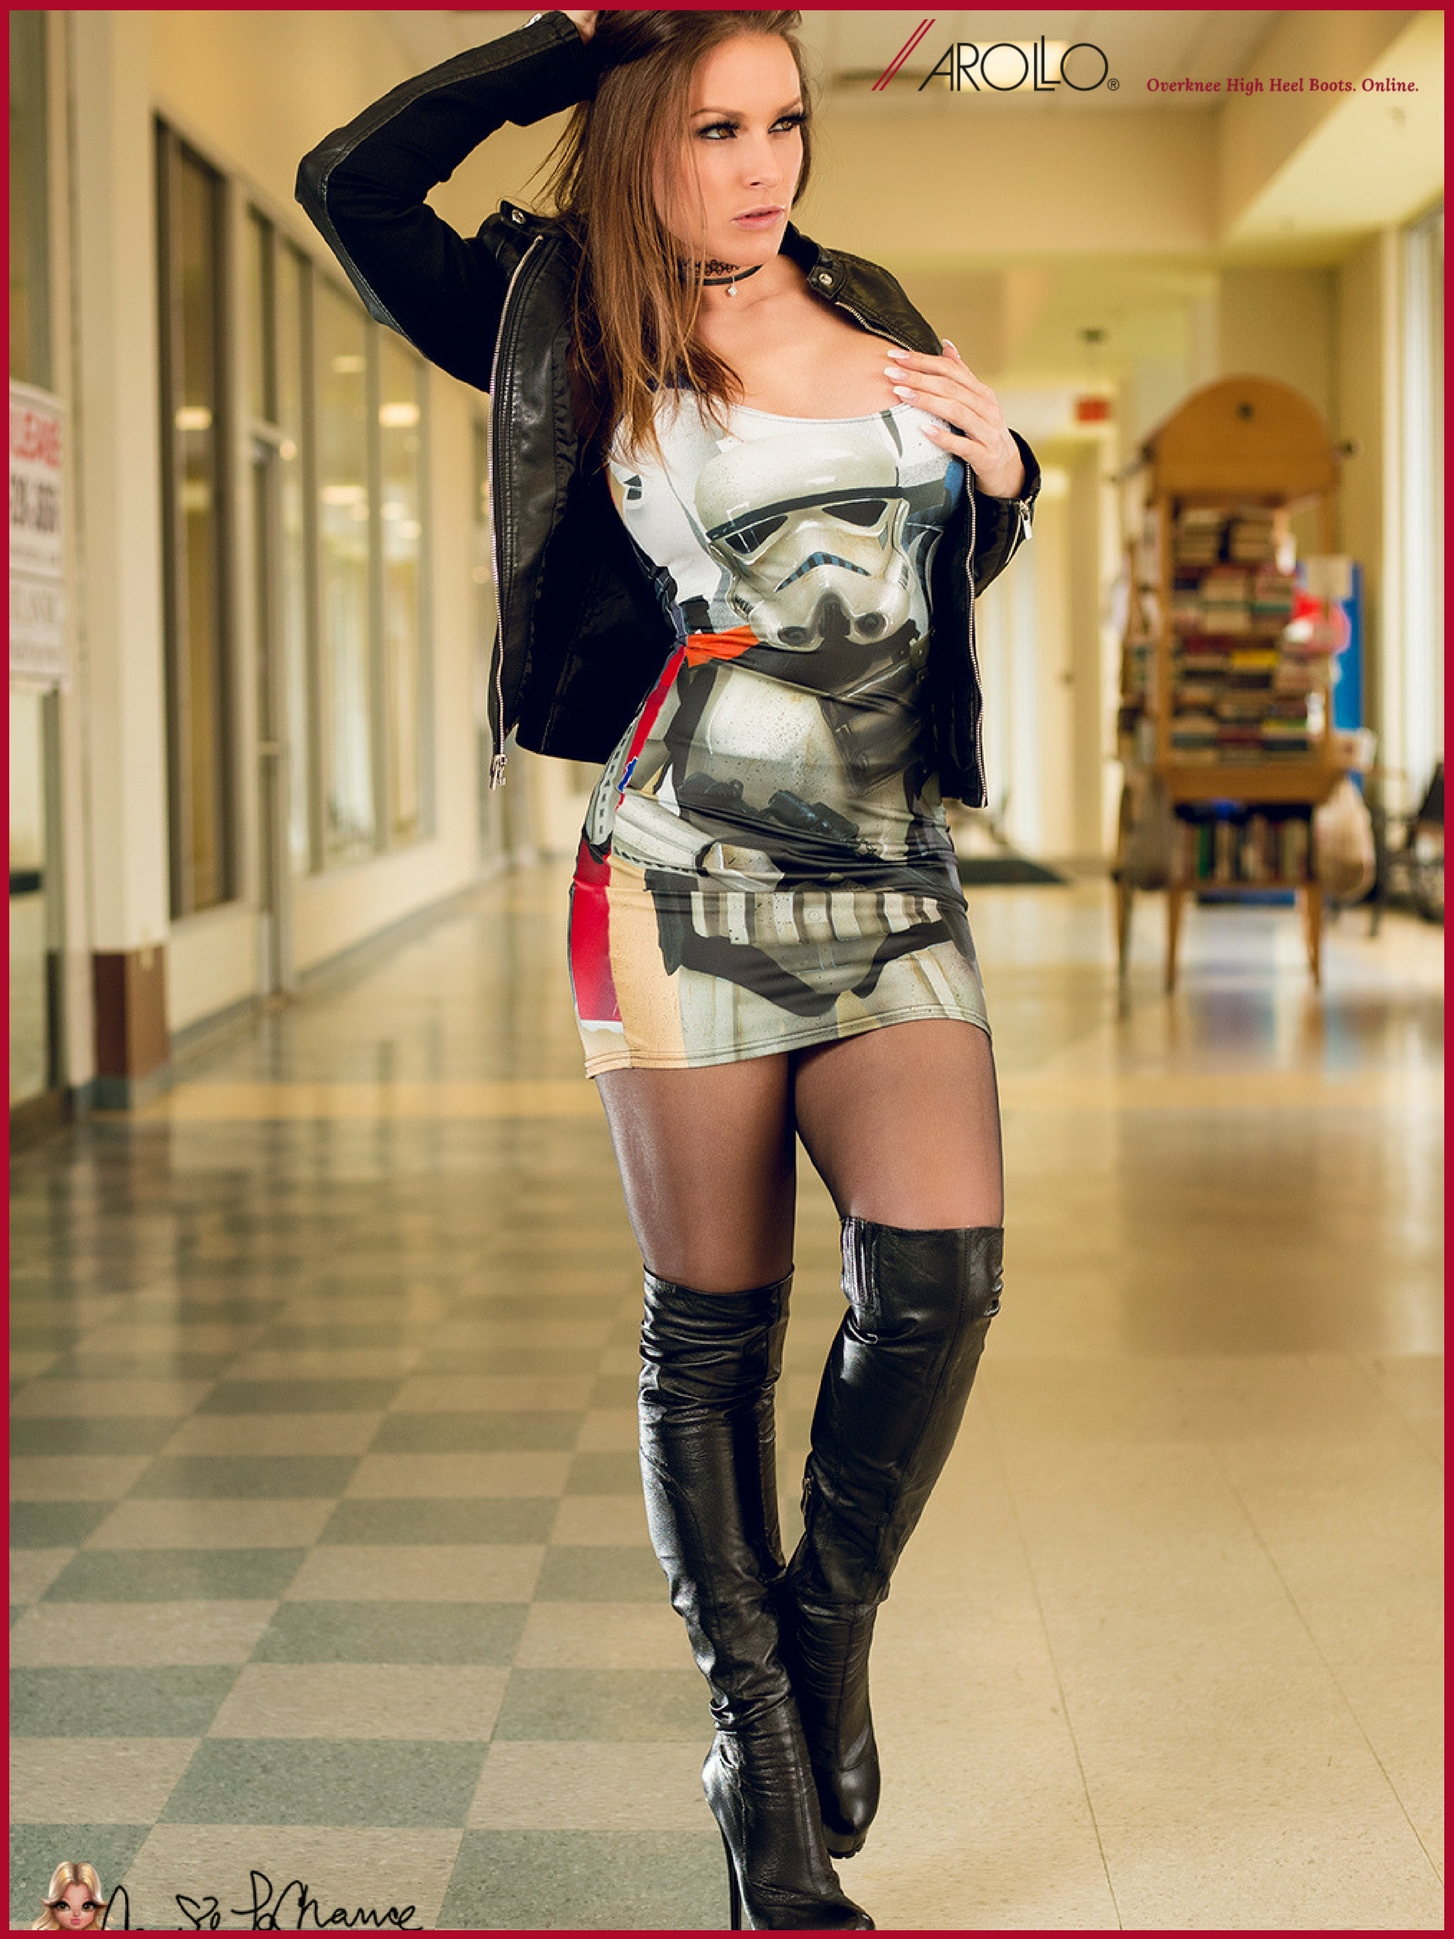 Carrie Lachance in AROLLO Overknee Boots ANNA3 Special Edition